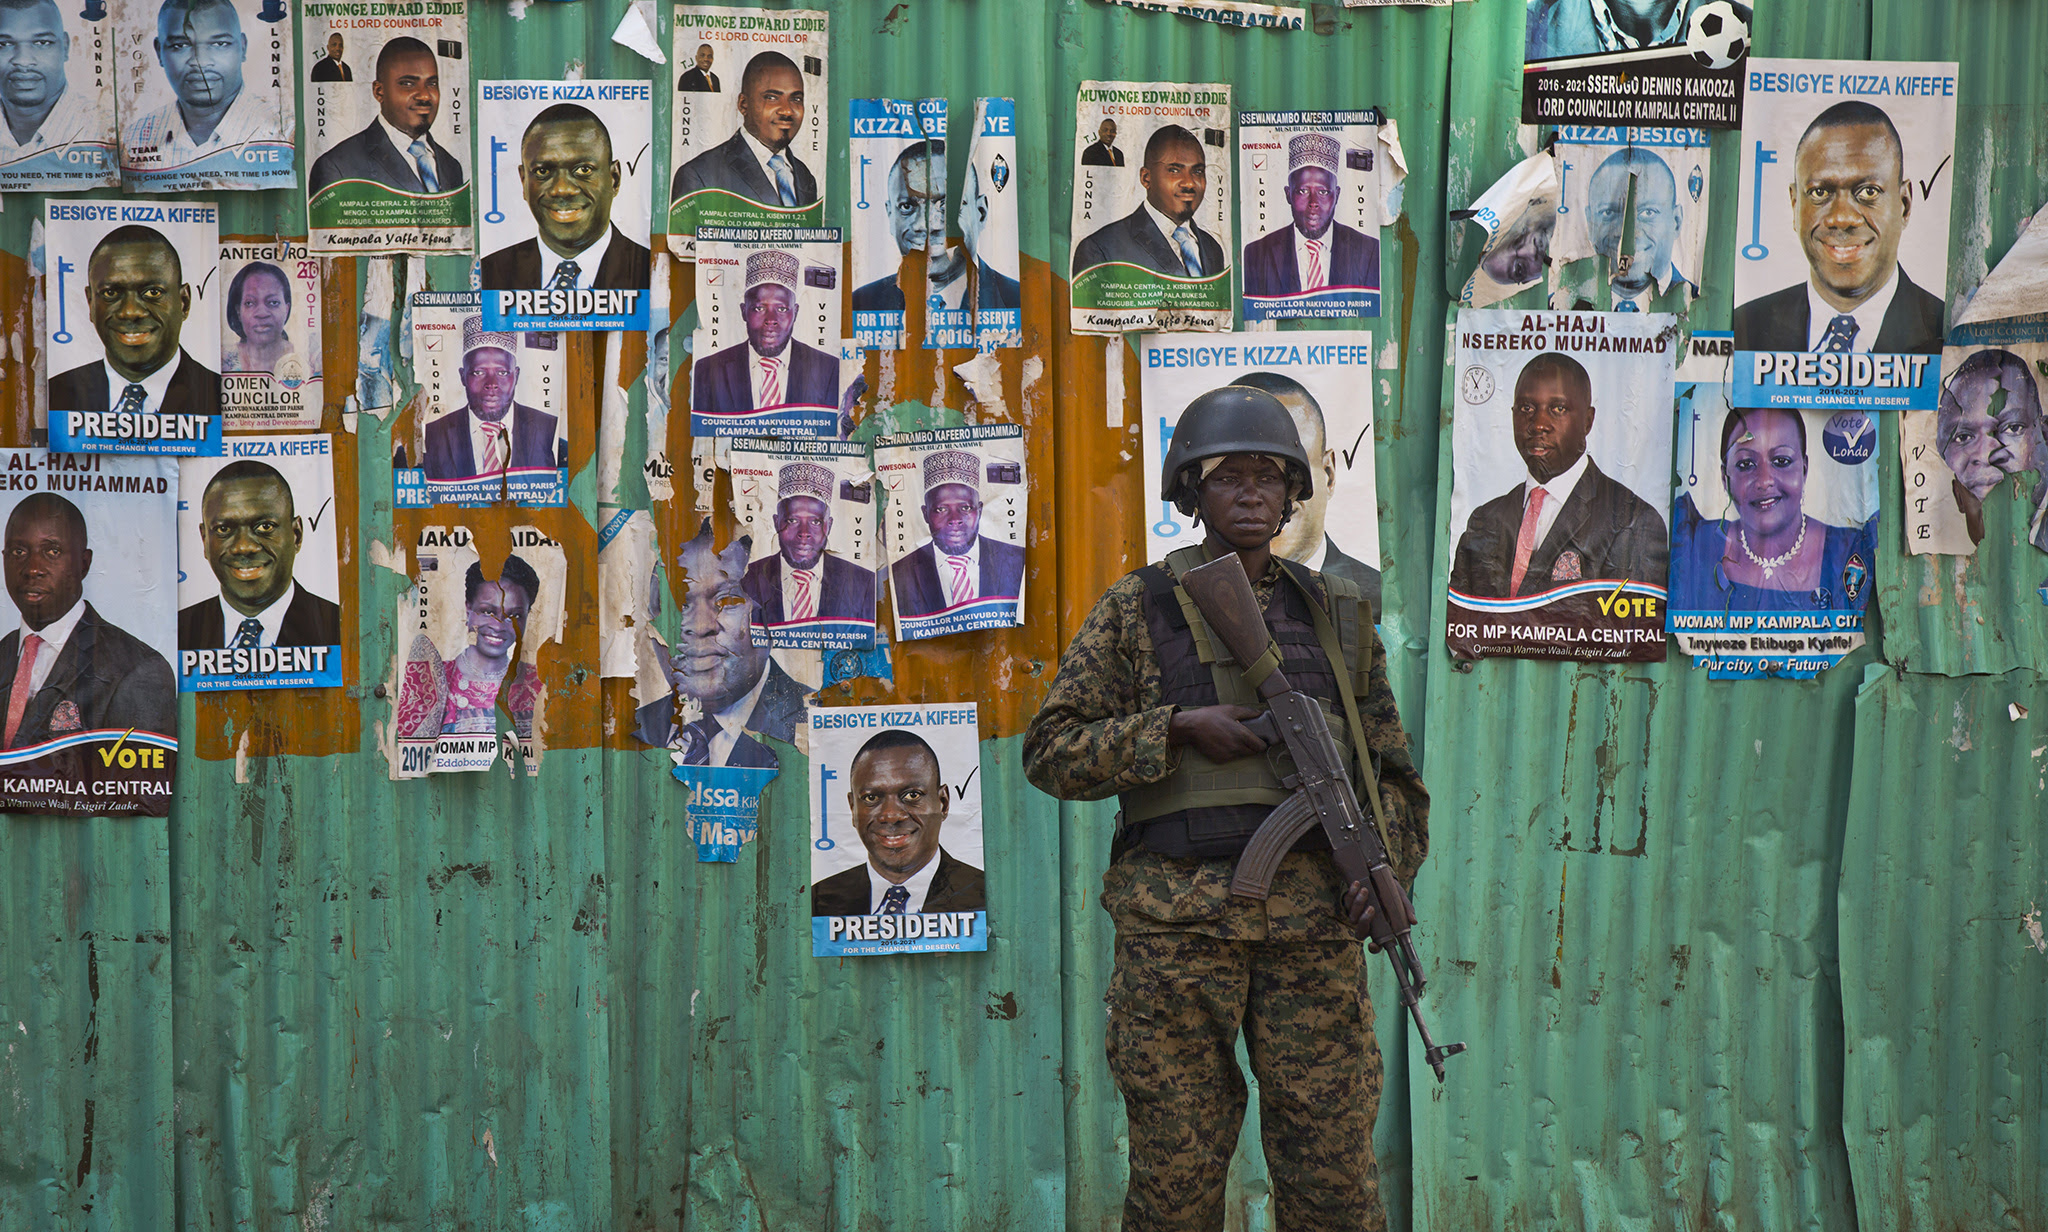 A Ugandan soldier stands guard in front of posters for opposition leader Kizza Besigye and other candidates fin the parliamentary elections